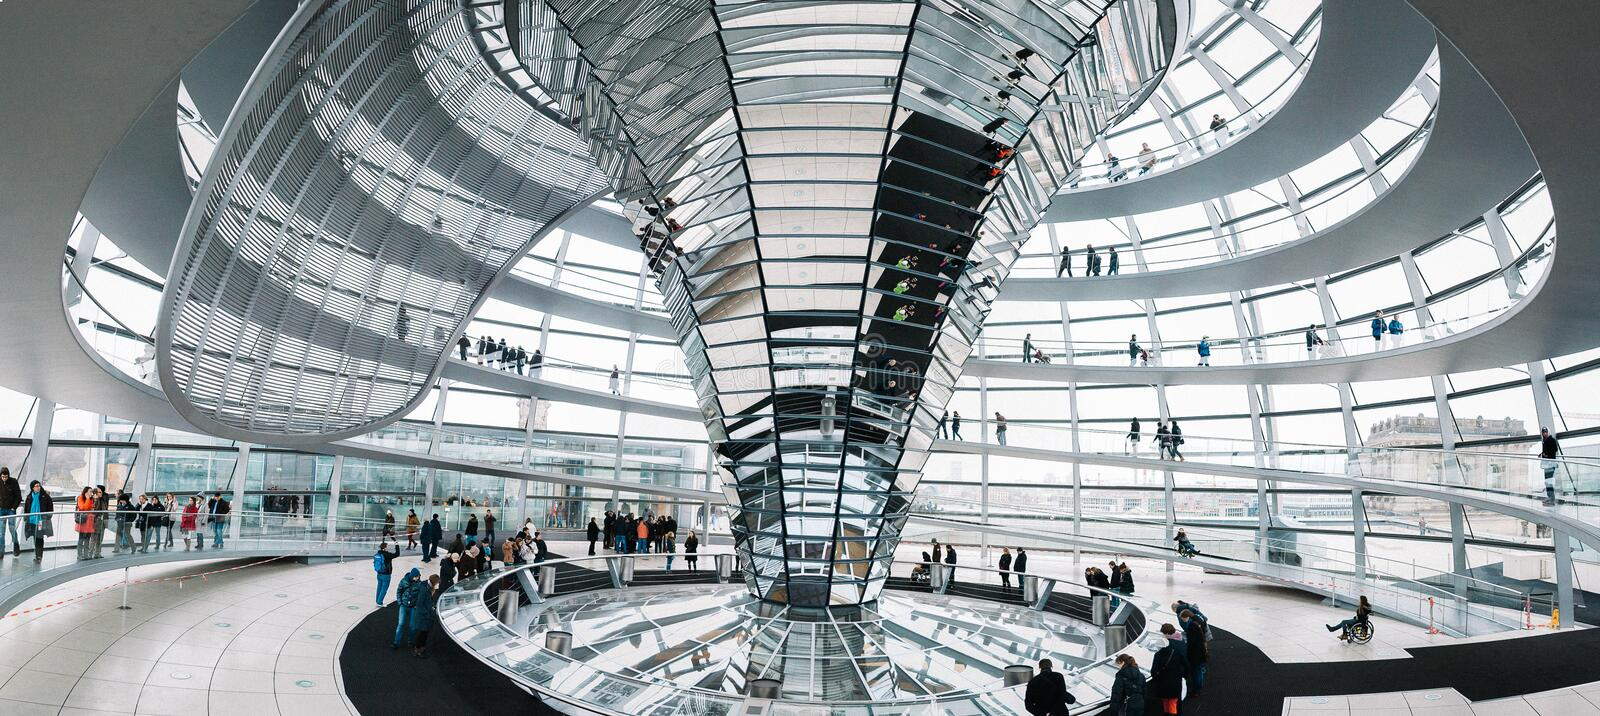 Inside the Reichstag Dome royalty free stock photos